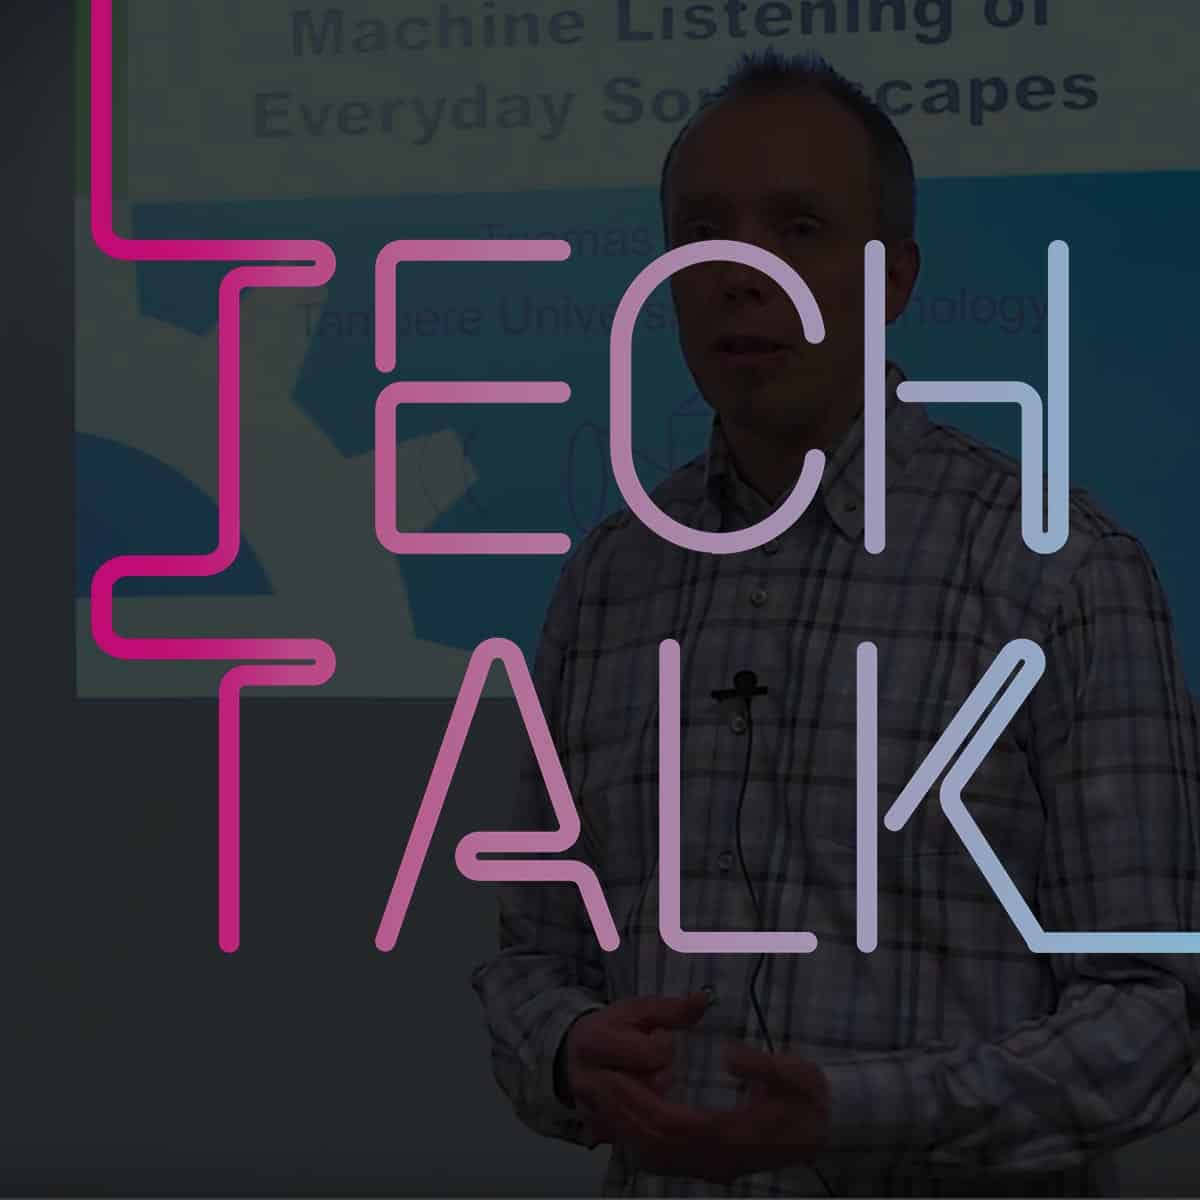 Tech Talk: Dr Tuomas Virtanen on 'Machine listening of everyday soundscapes'